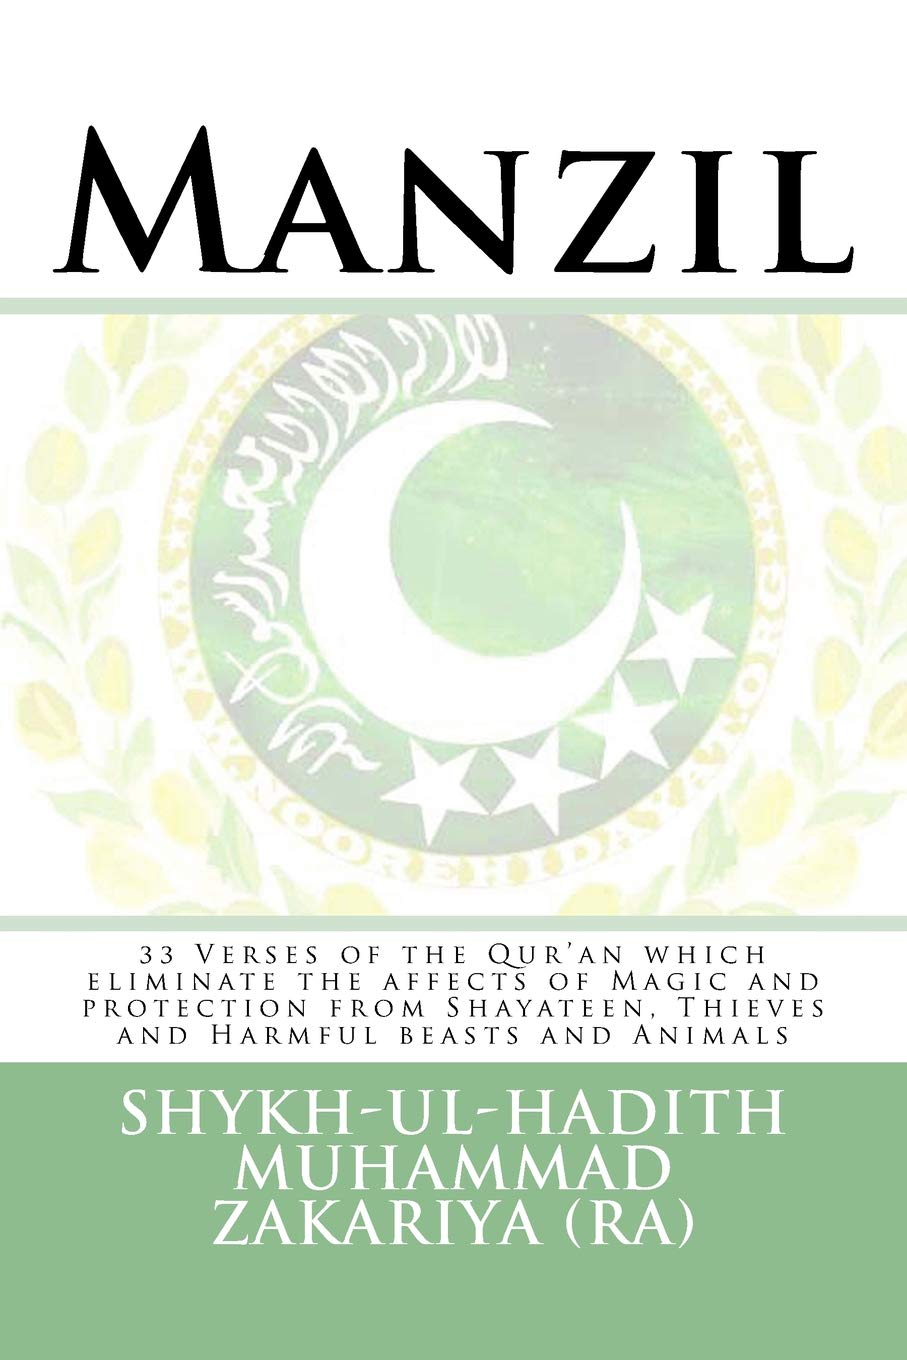 Manzil: 33 Verses of the Qur'an which eliminate the affects